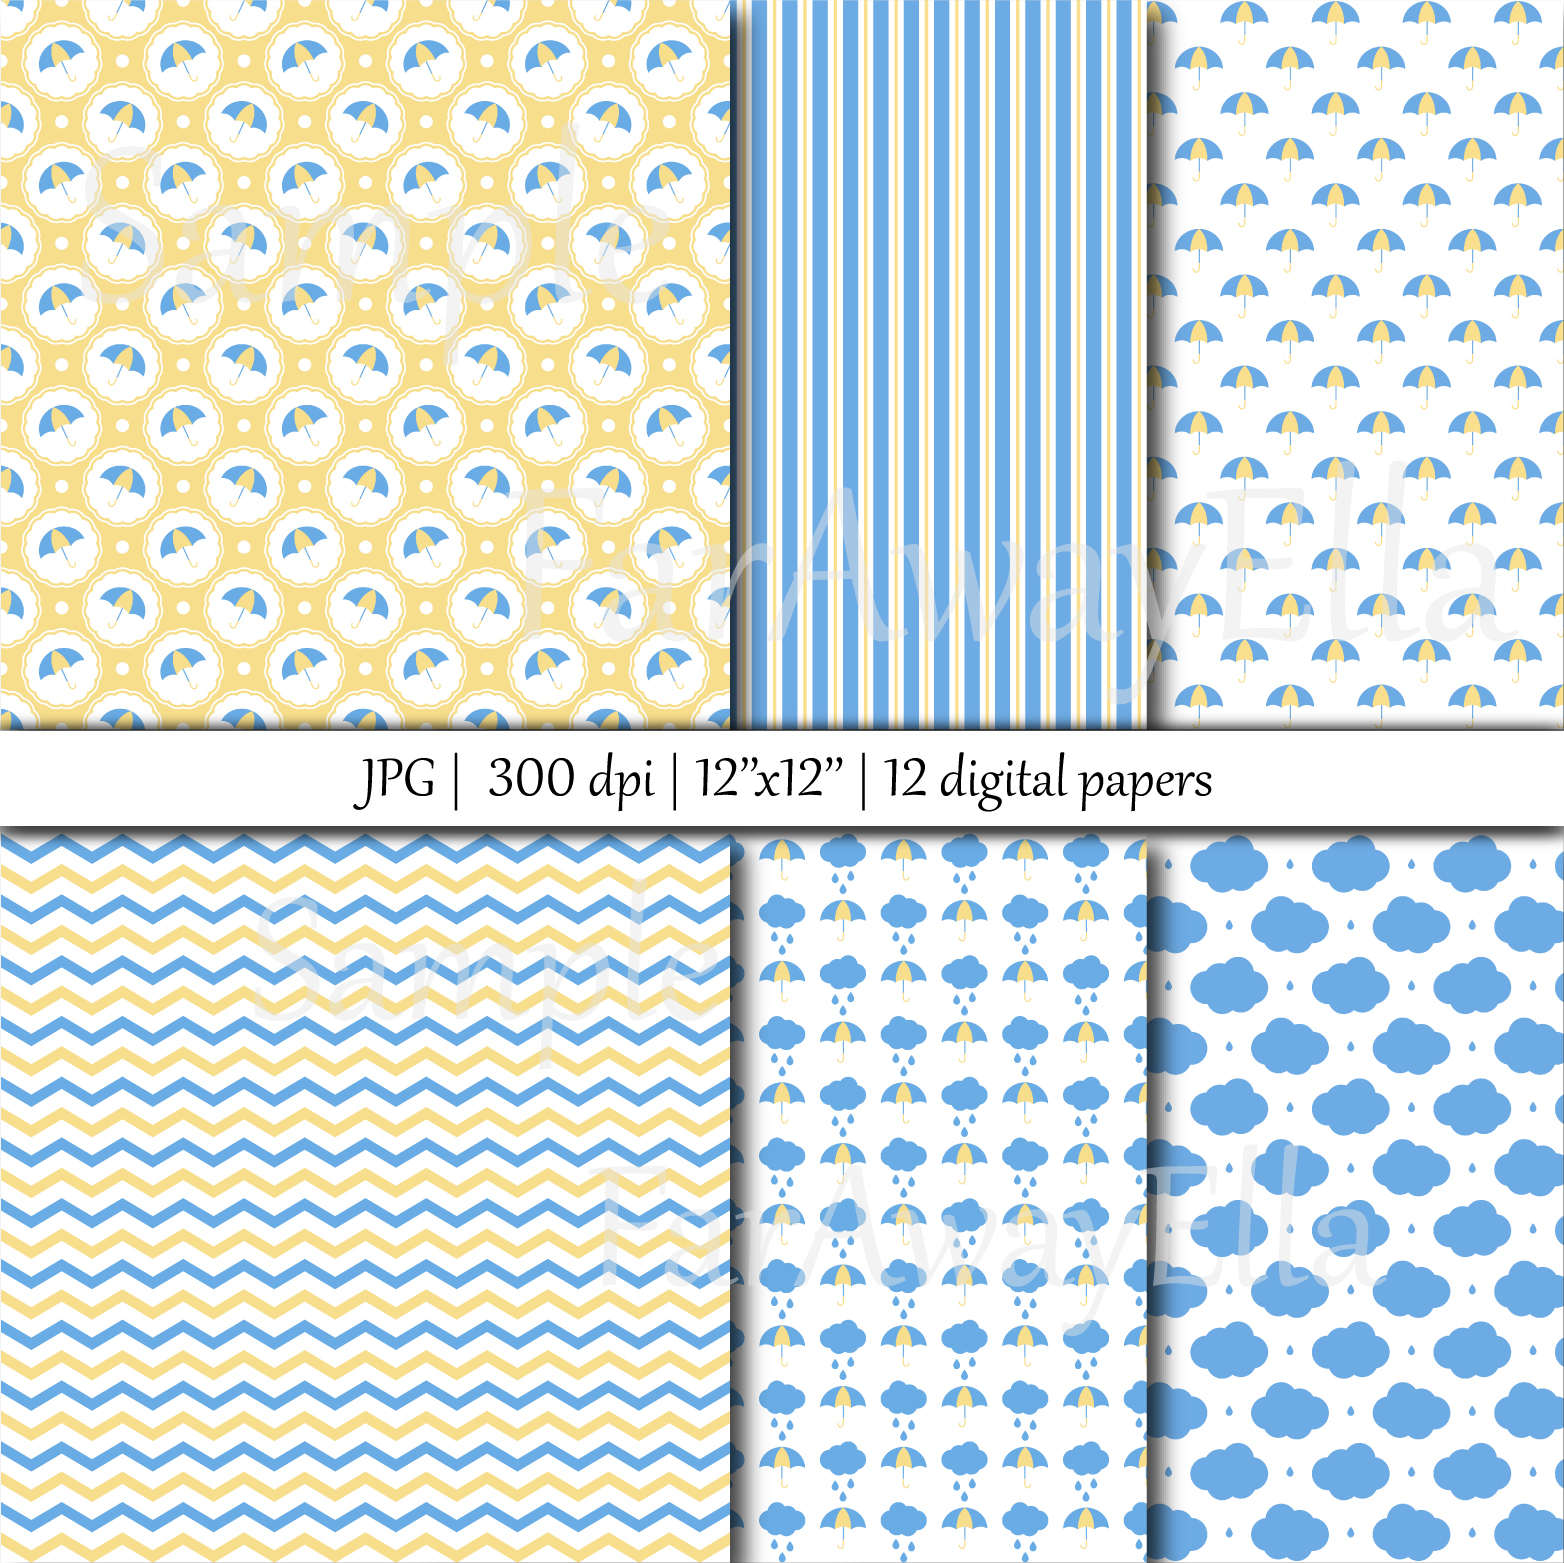 Baby shower blue and yellow JPG digital paper | Seamless example image 3